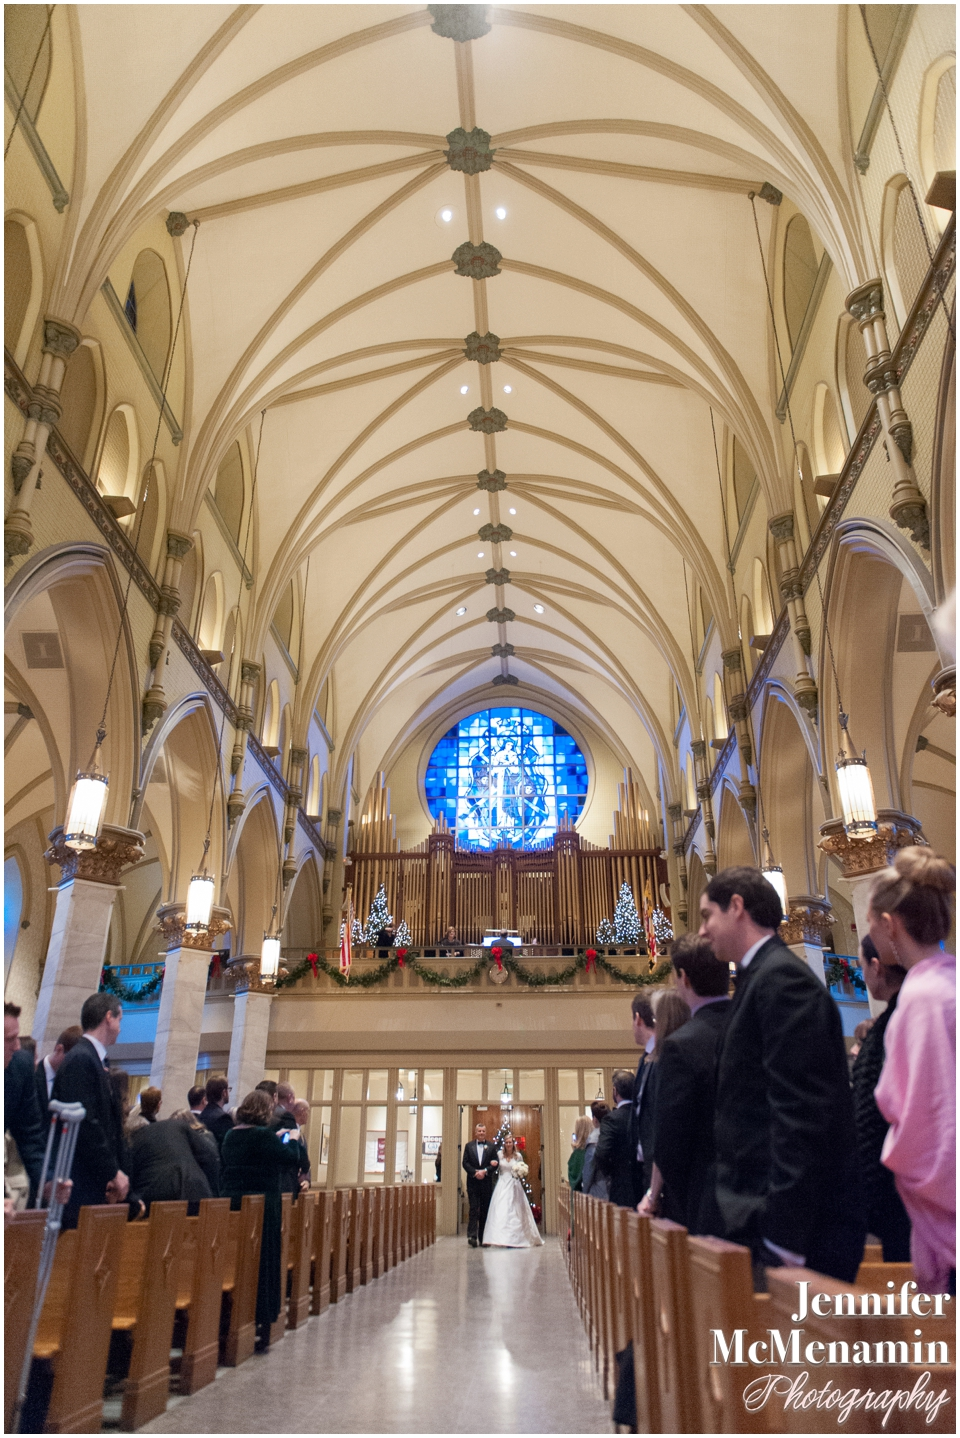 0037_RyanClemmens_01126-0285_JenniferMcMenaminPhotography_Immaculate-Conception-Church_The-Cloisters_Baltimore-wedding-photography_Baltimore-wedding-photographer